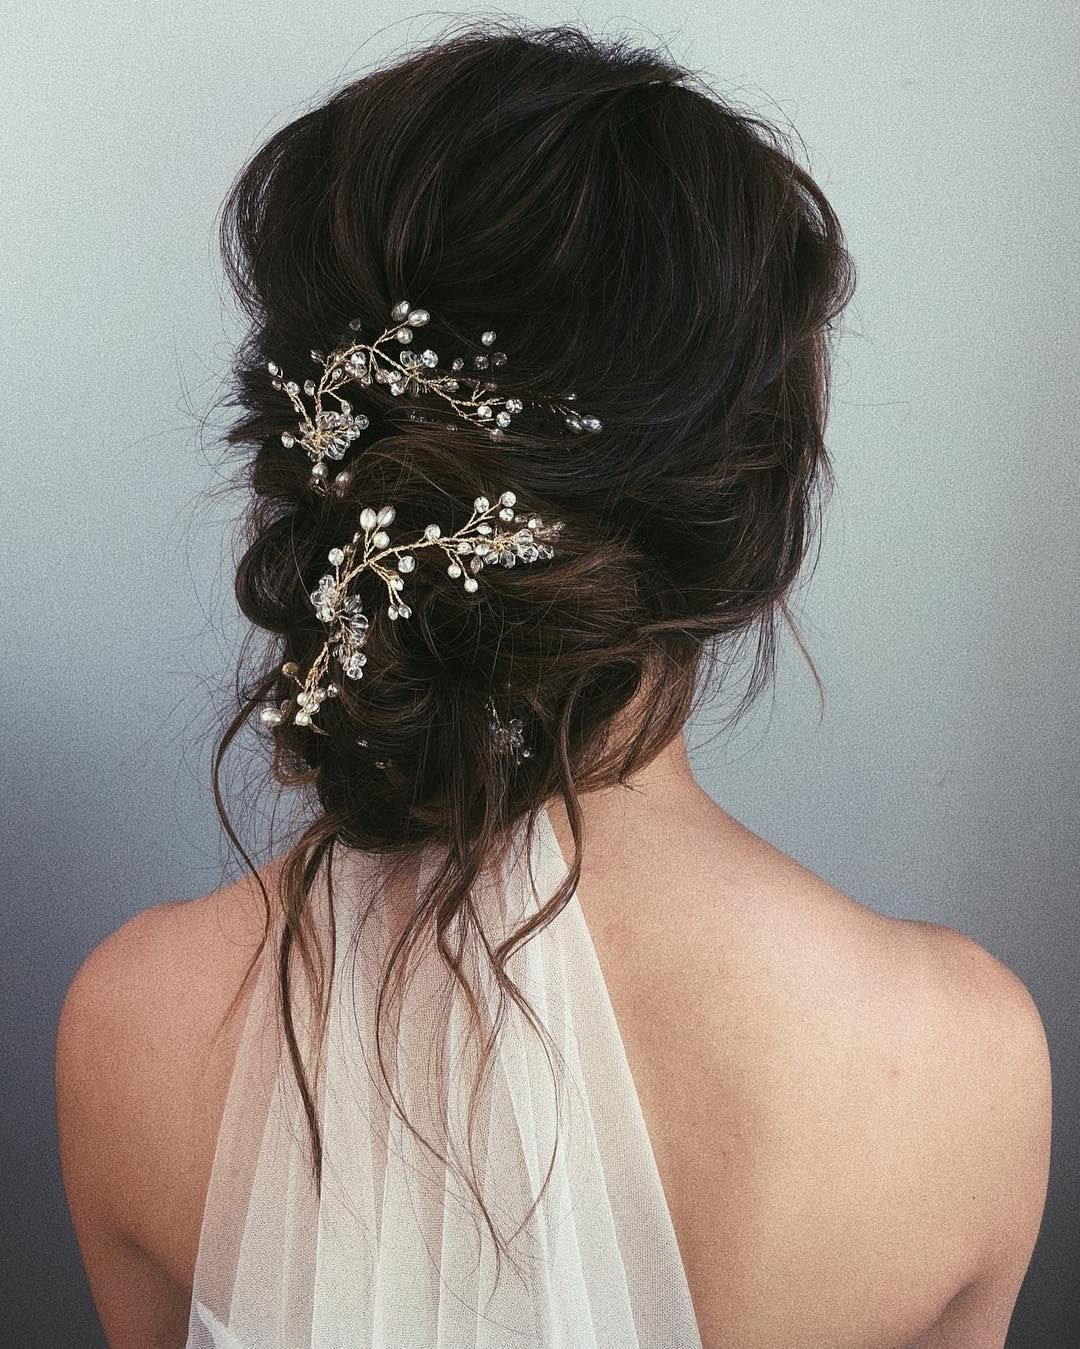 wedding hairstyles with veil underneath #hairstyle #haircut